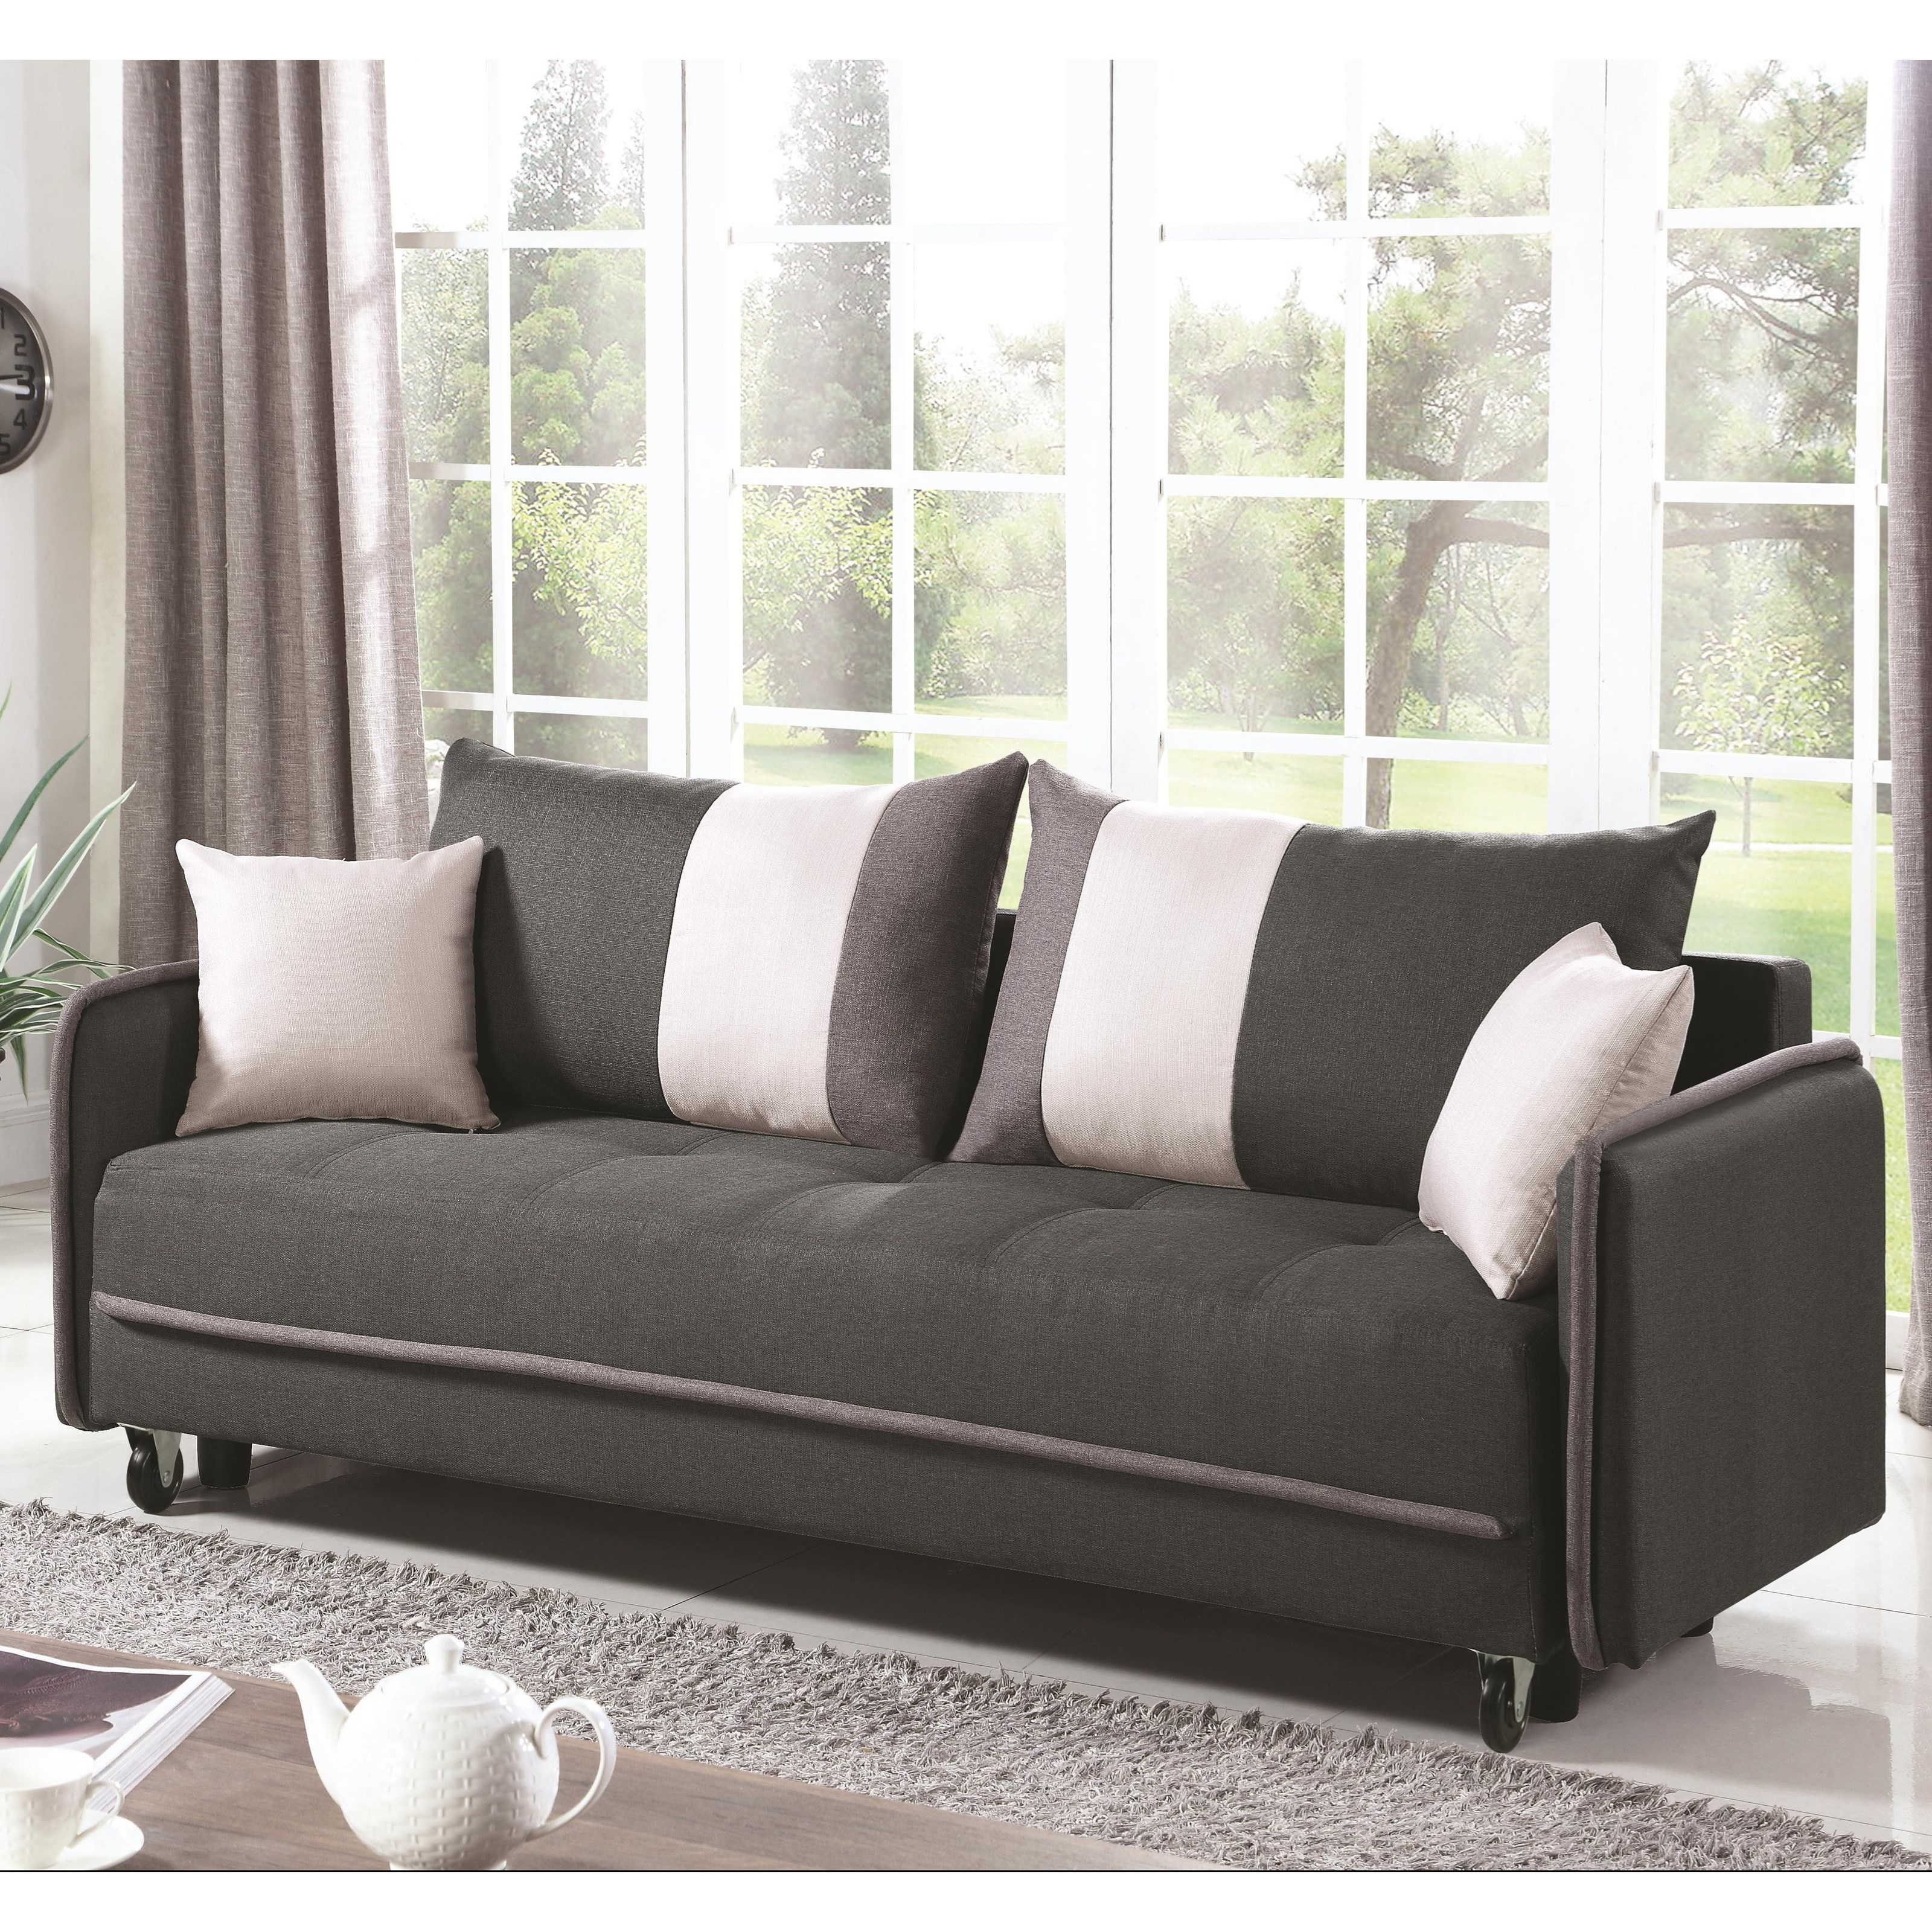 Futon Schlafsofa Sofa Beds And Futons Casual Convertible Sofa By Coaster At Prime Brothers Furniture